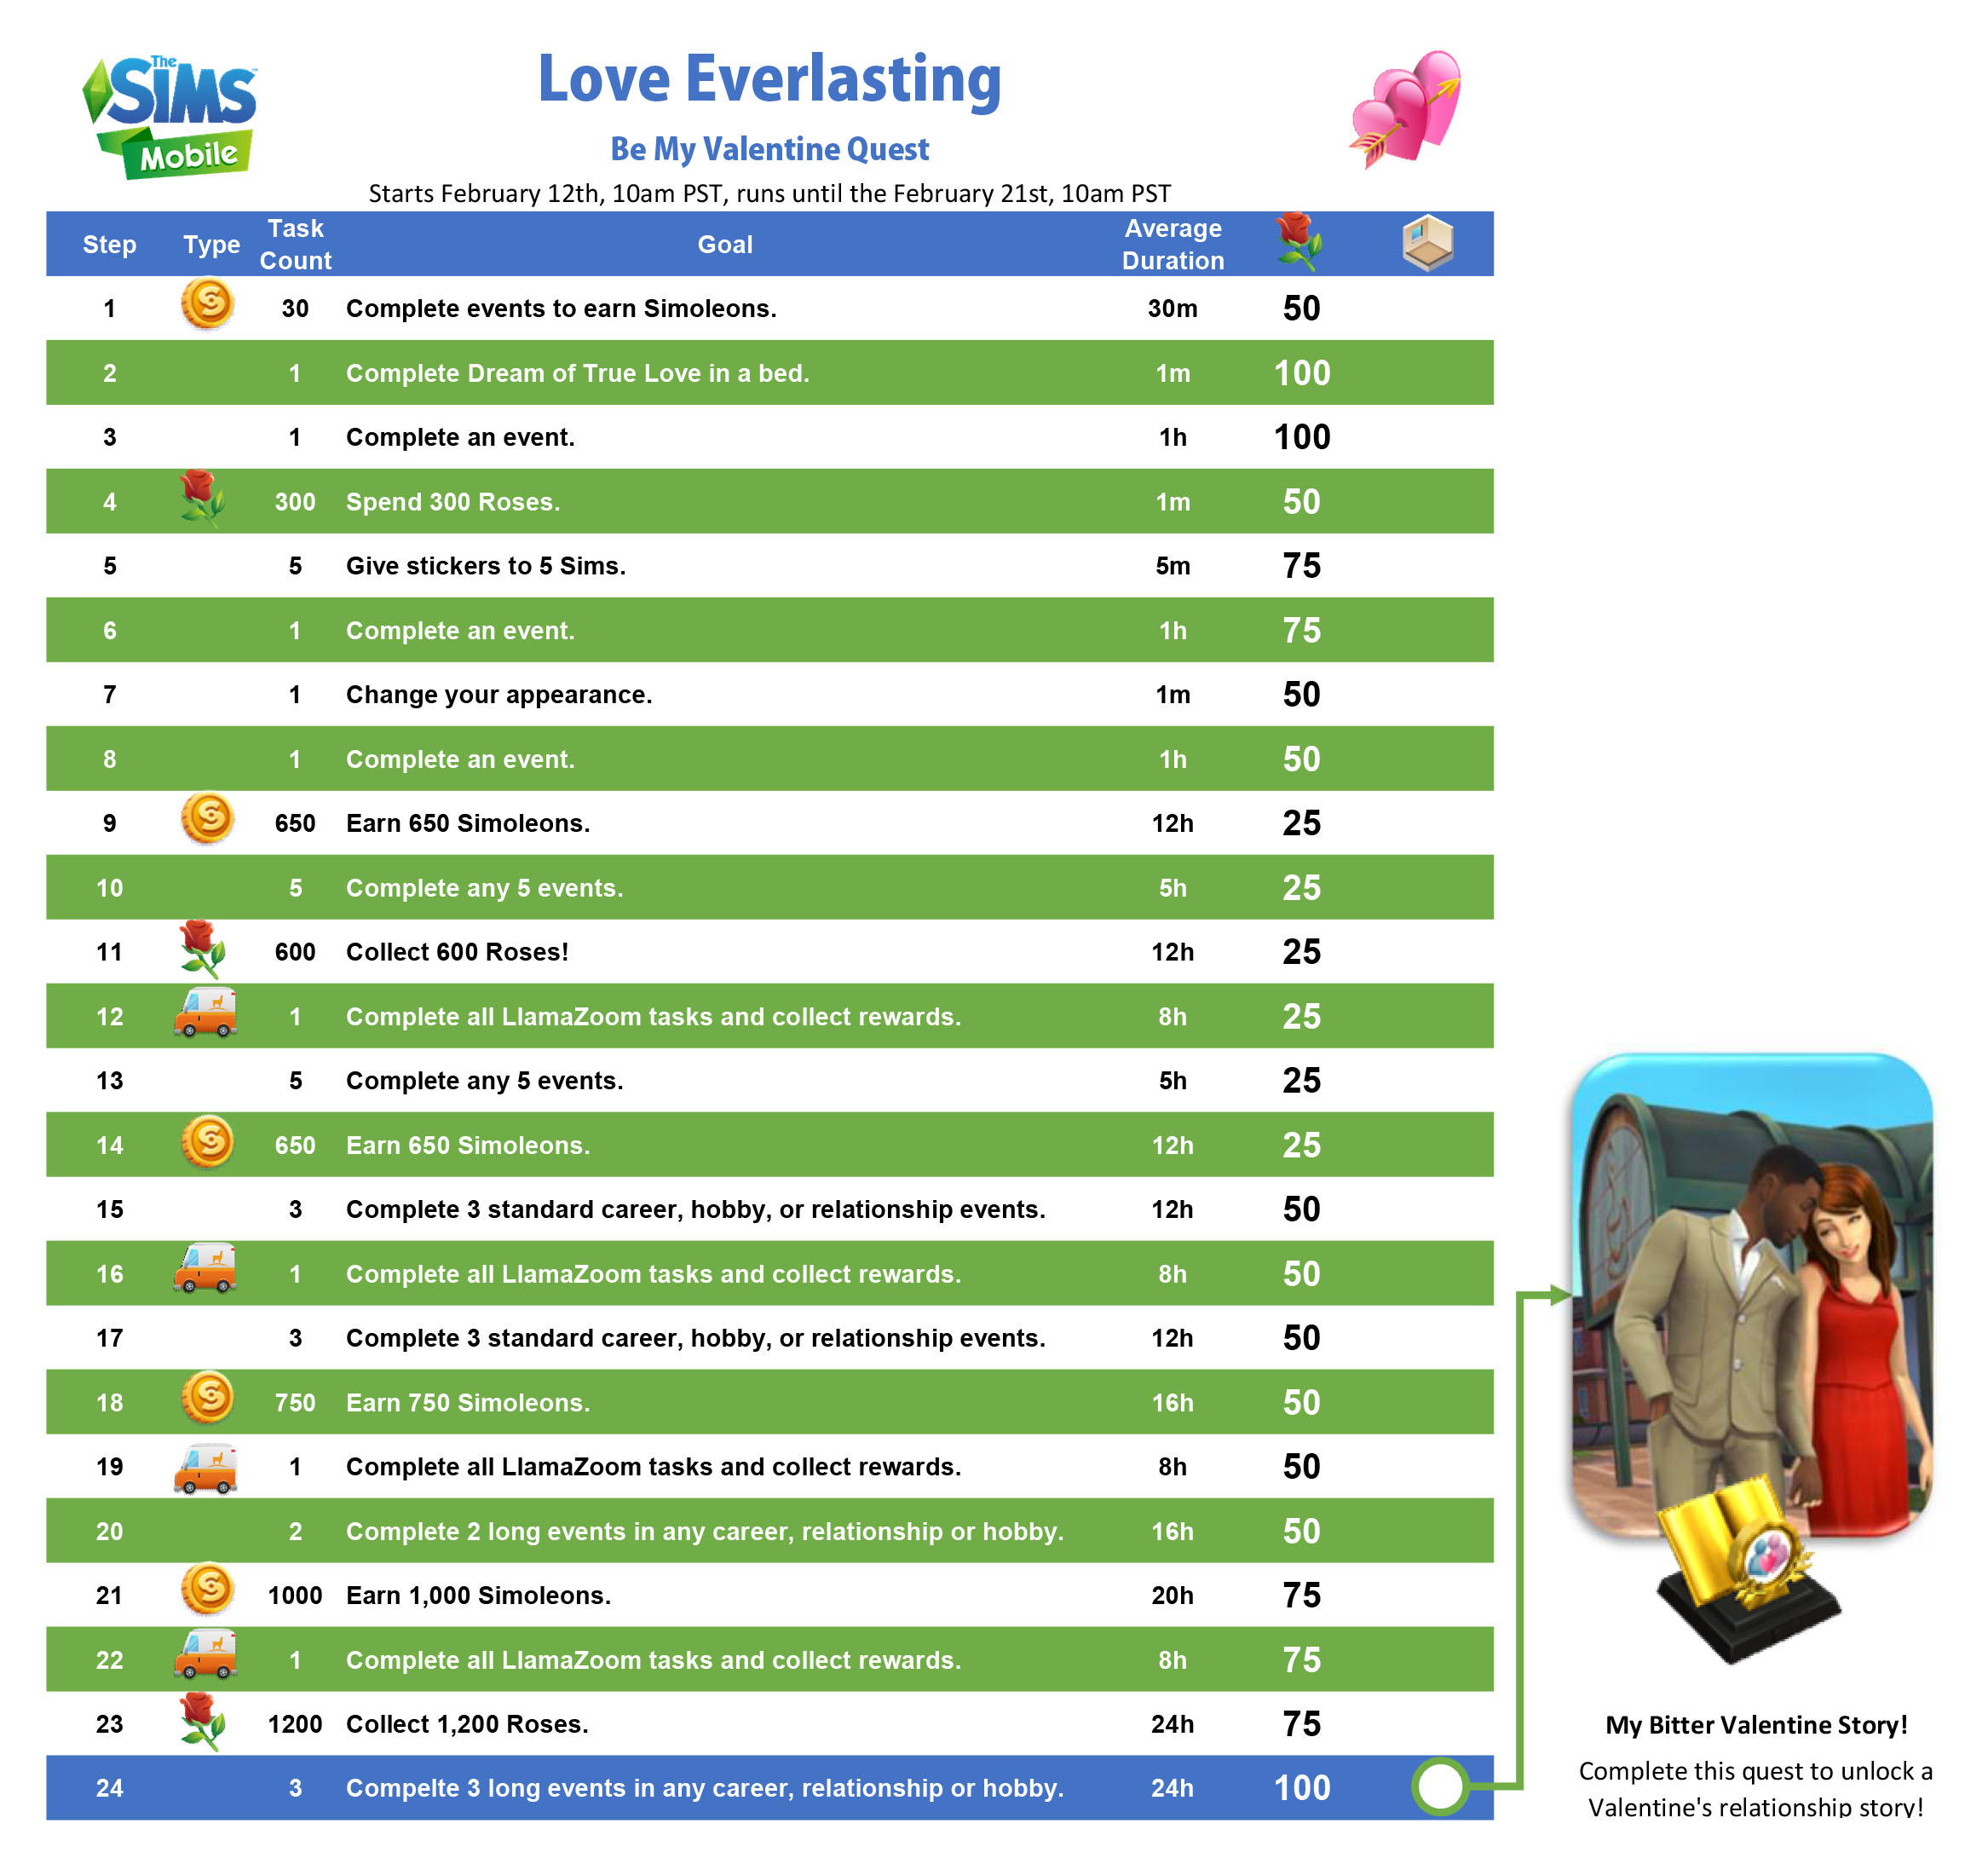 The Sims Mobile Be My Valentine event + Love Everlasting Quest Walkthrough! [Early Access]